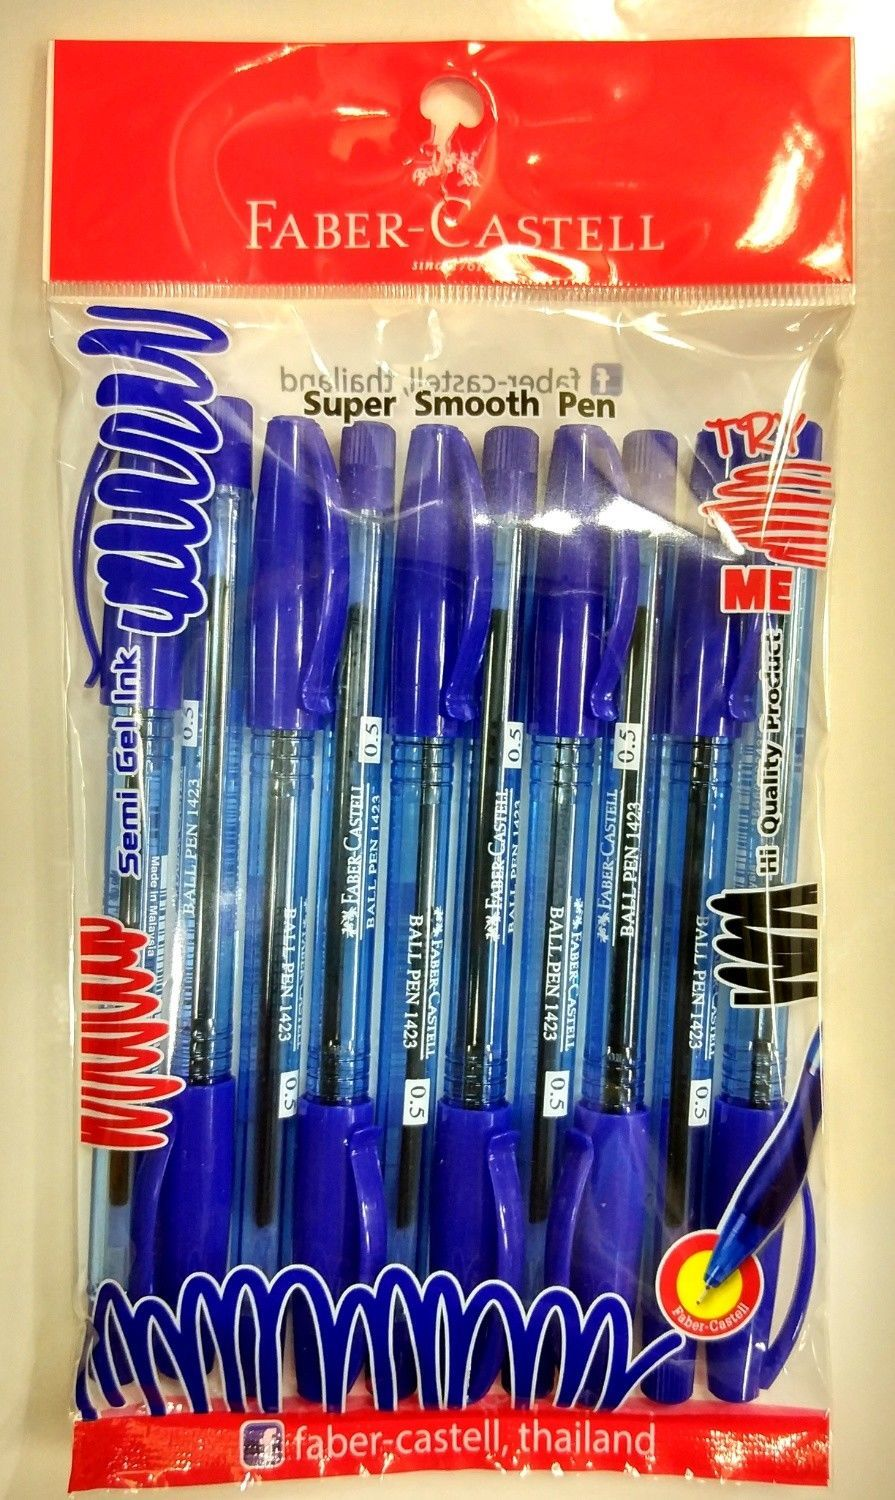 FABER-CASTELL 1423 NEW 10 PENS CLIP BLUE INK ,BARREL BALL POINT PEN 0.5mm.